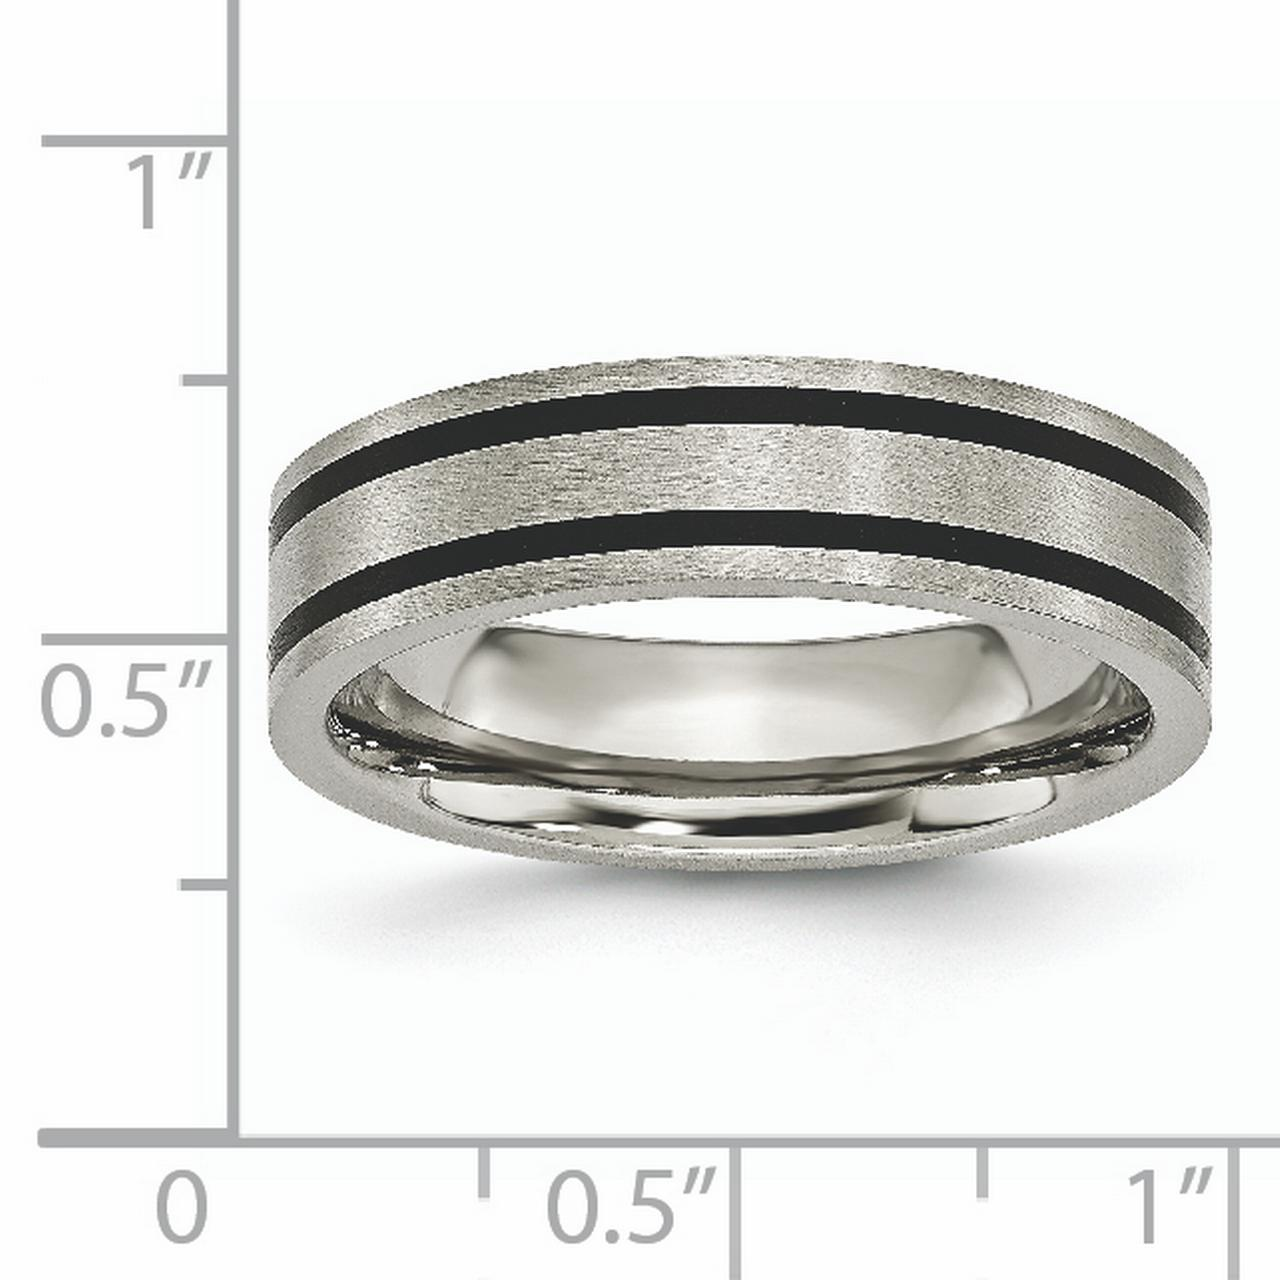 Titanium Brushed Enameled Flat 6mm Wedding Ring Band Size 7.00 Fashion Jewelry Gifts For Women For Her - image 2 de 6